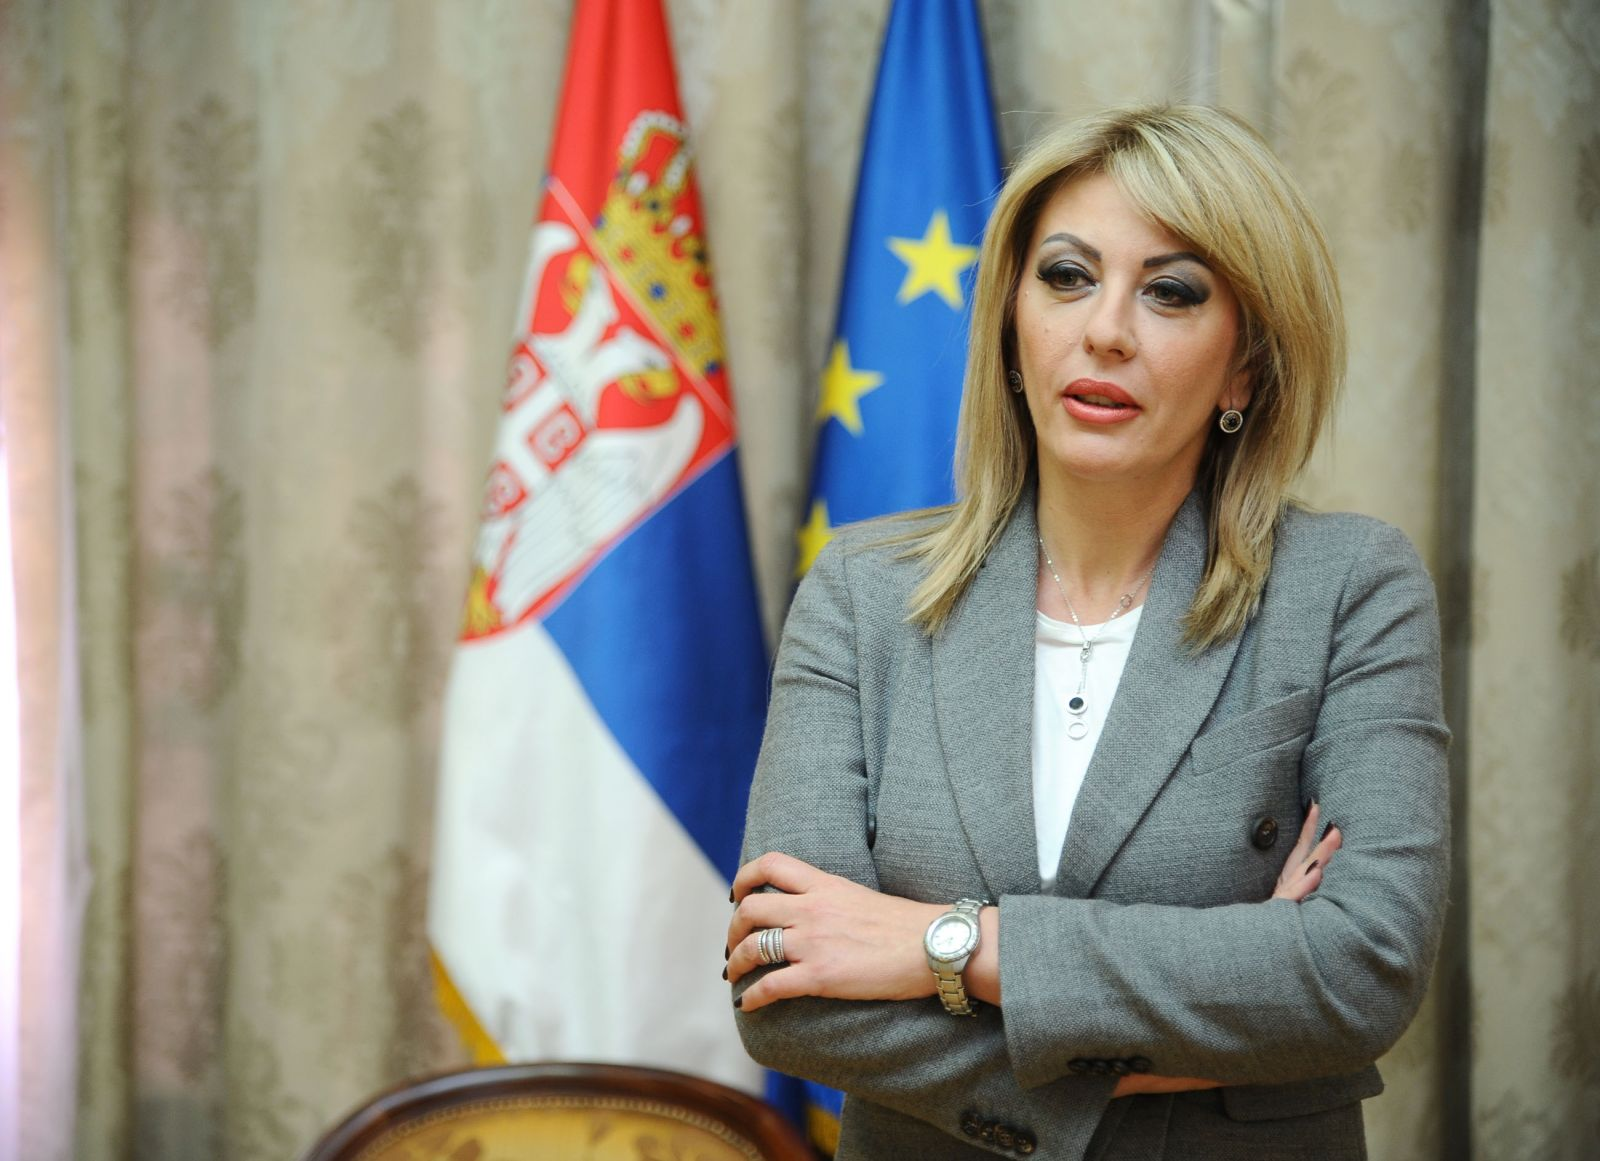 J. Joksimović: We are active in reforms and committed to cooperation; we expect the opening of new chapters